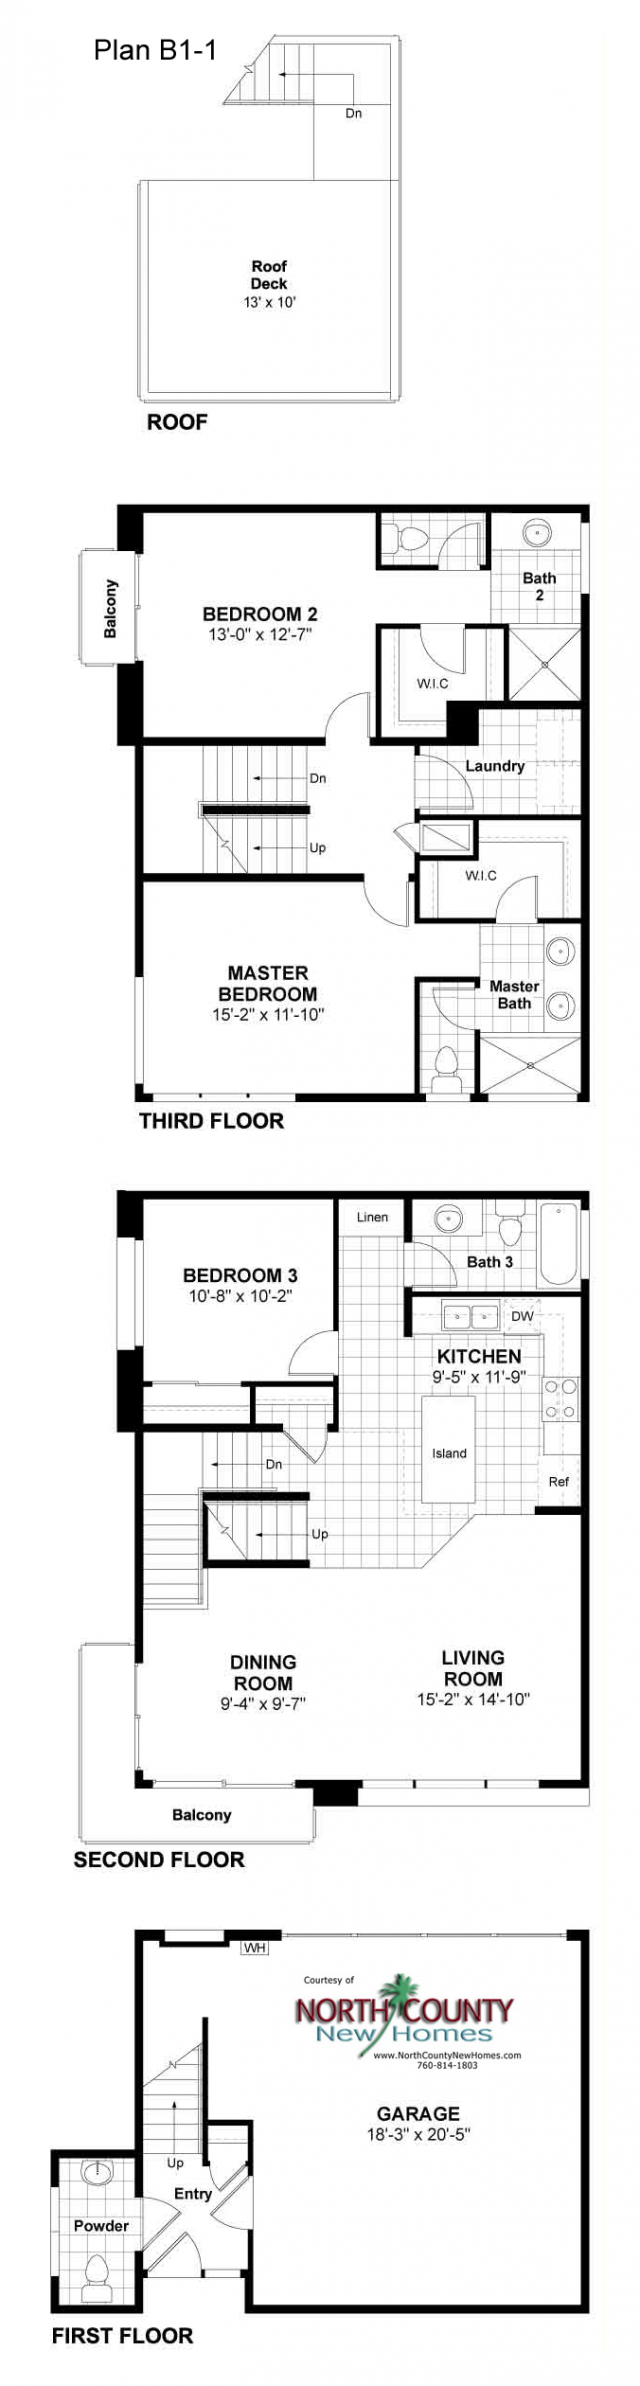 New homes and townhomes in Oceanside, CA. New construction homes for sale. North County San Diego new homes. Floor plans